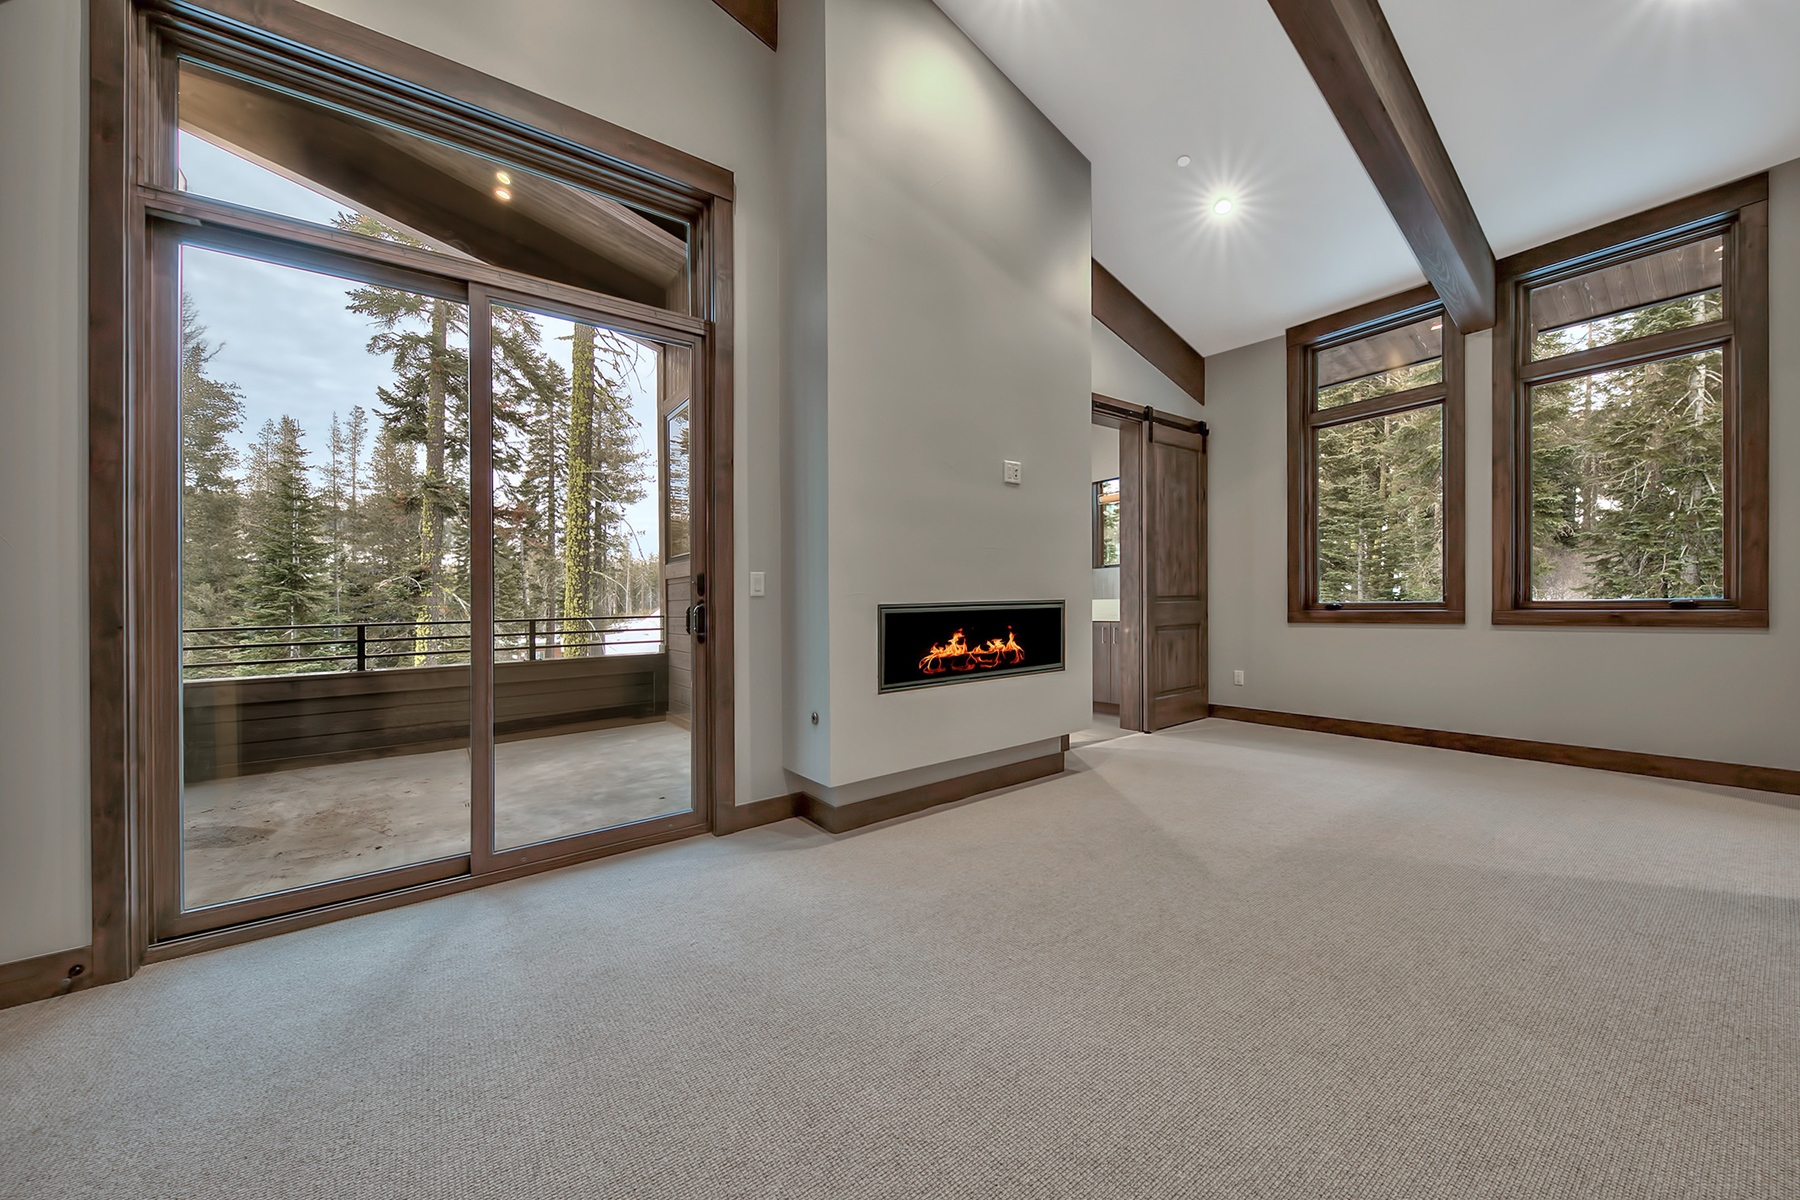 Additional photo for property listing at 790 Twinberry, Norden, CA 790 Twinberry Norden, California 95724 United States